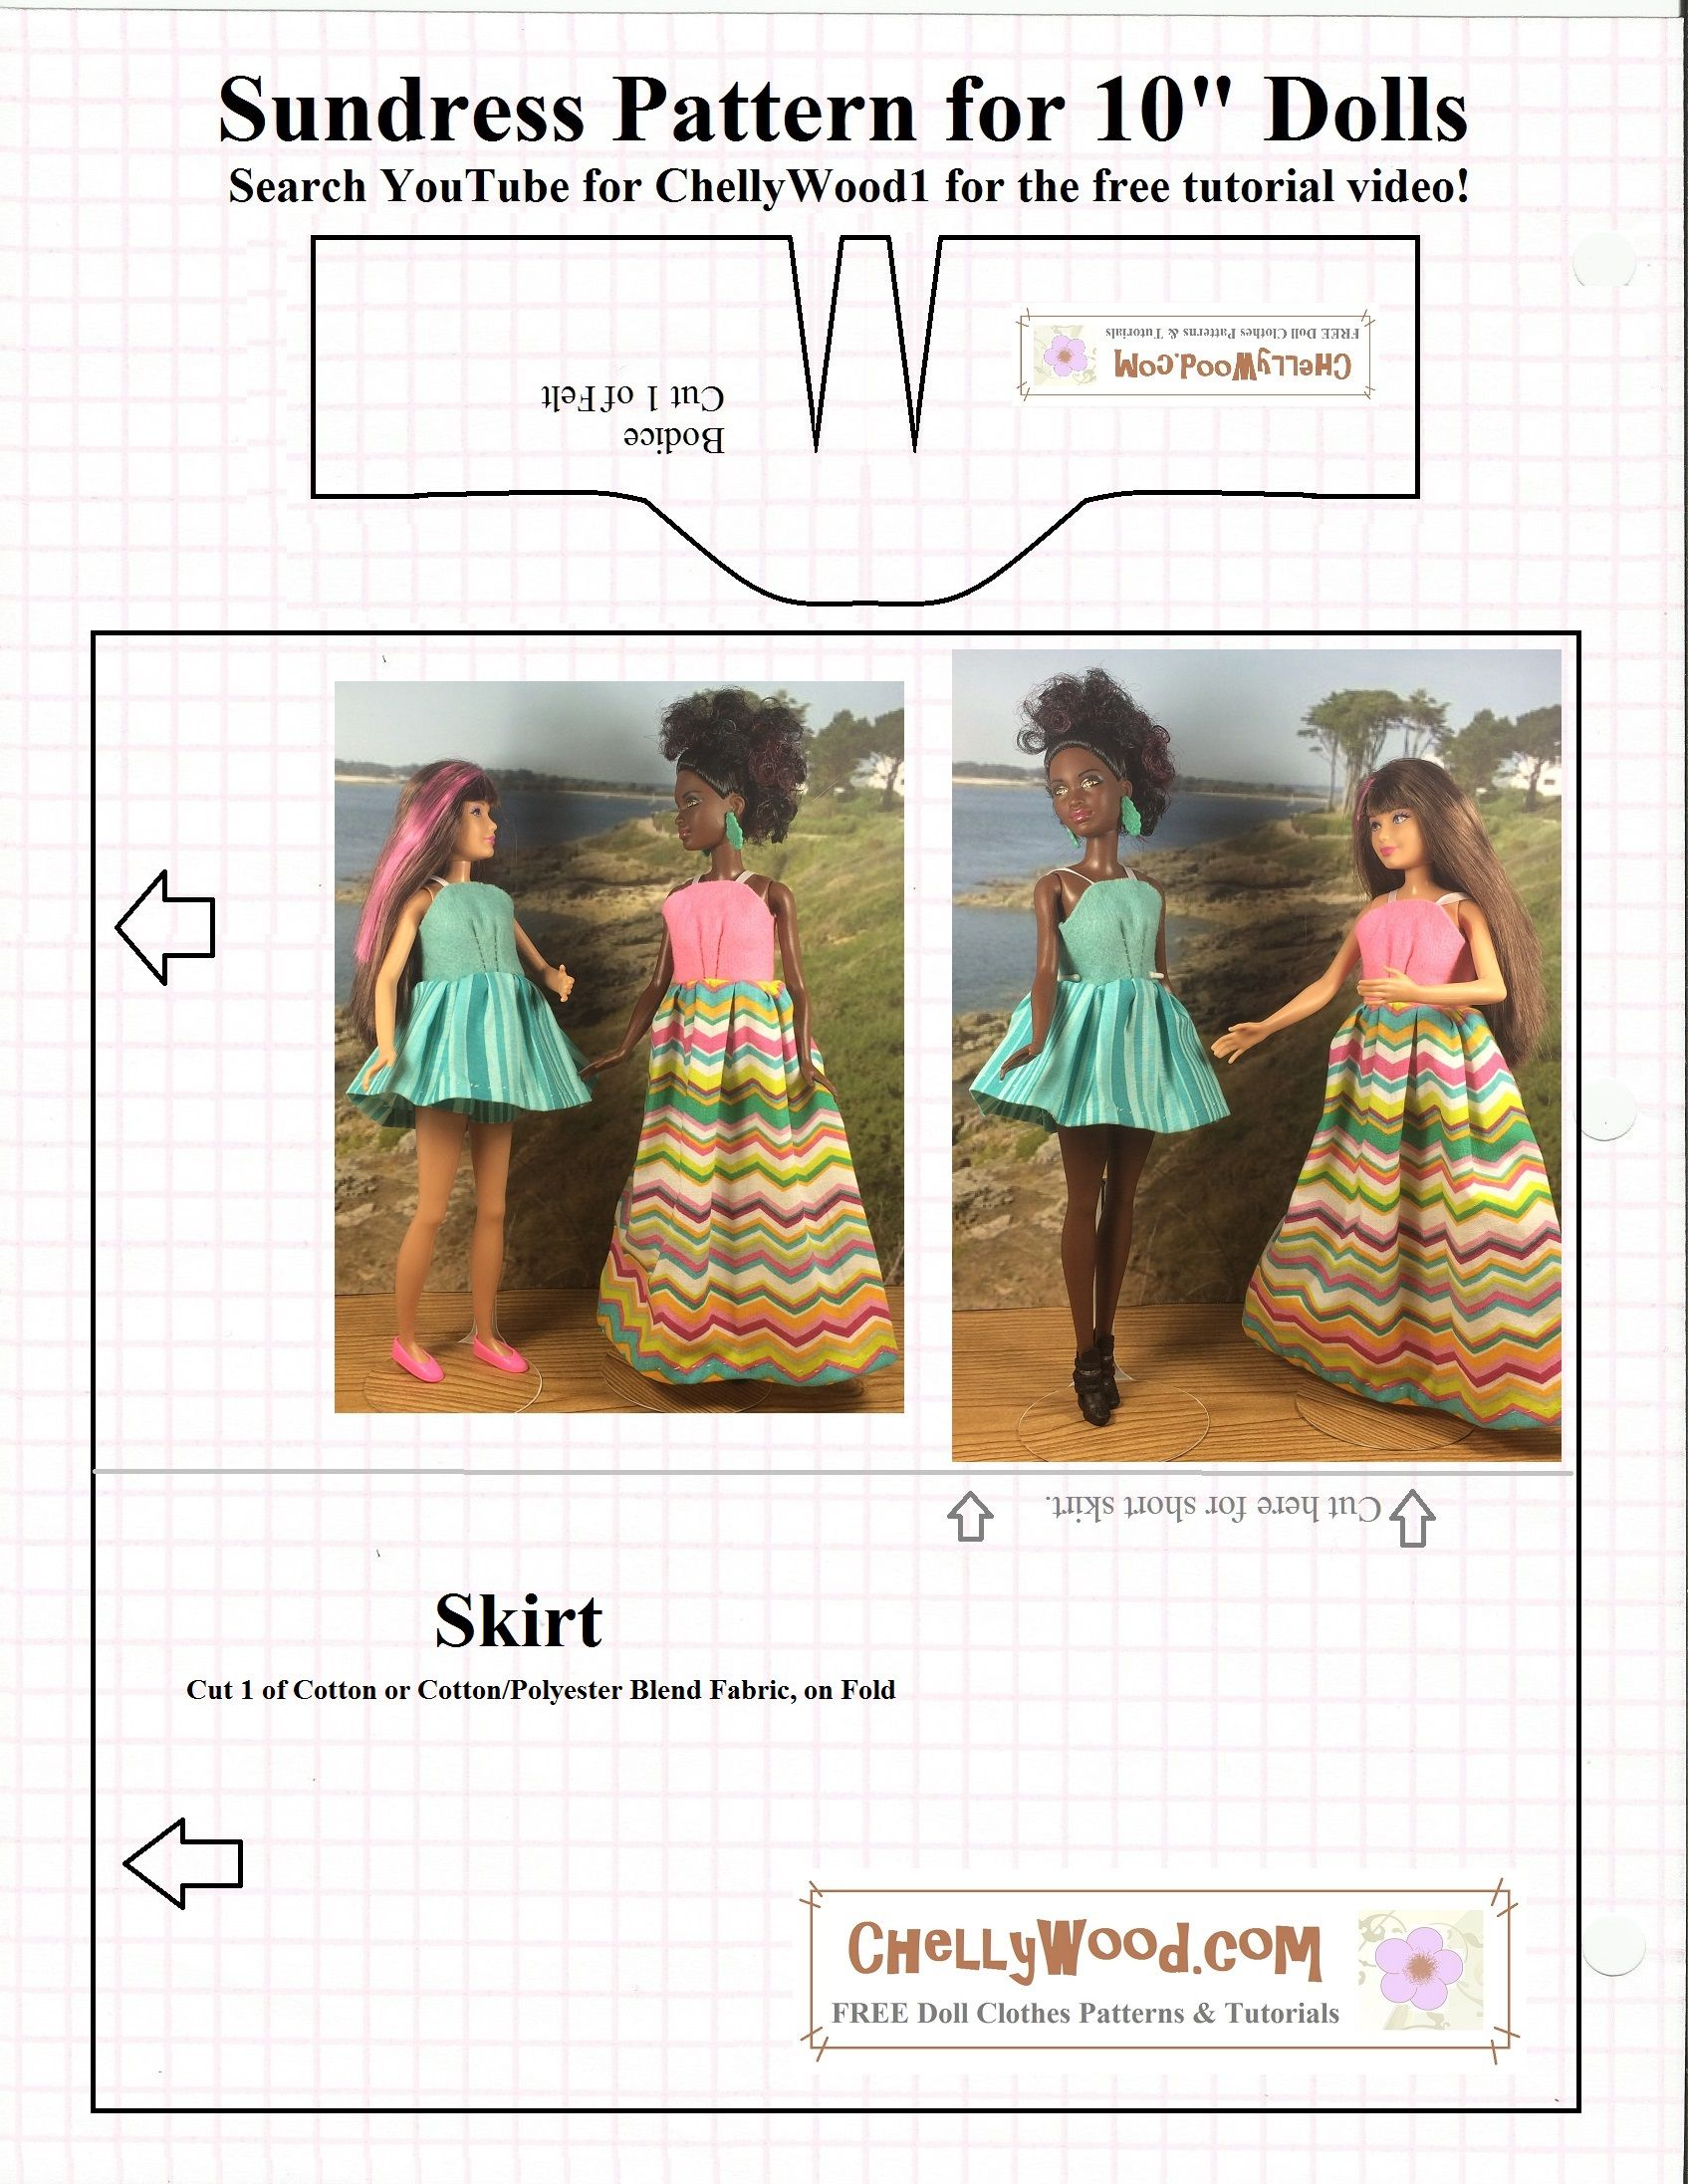 The tutorial that shows you how to make this dress is also free at ChellyWood.com